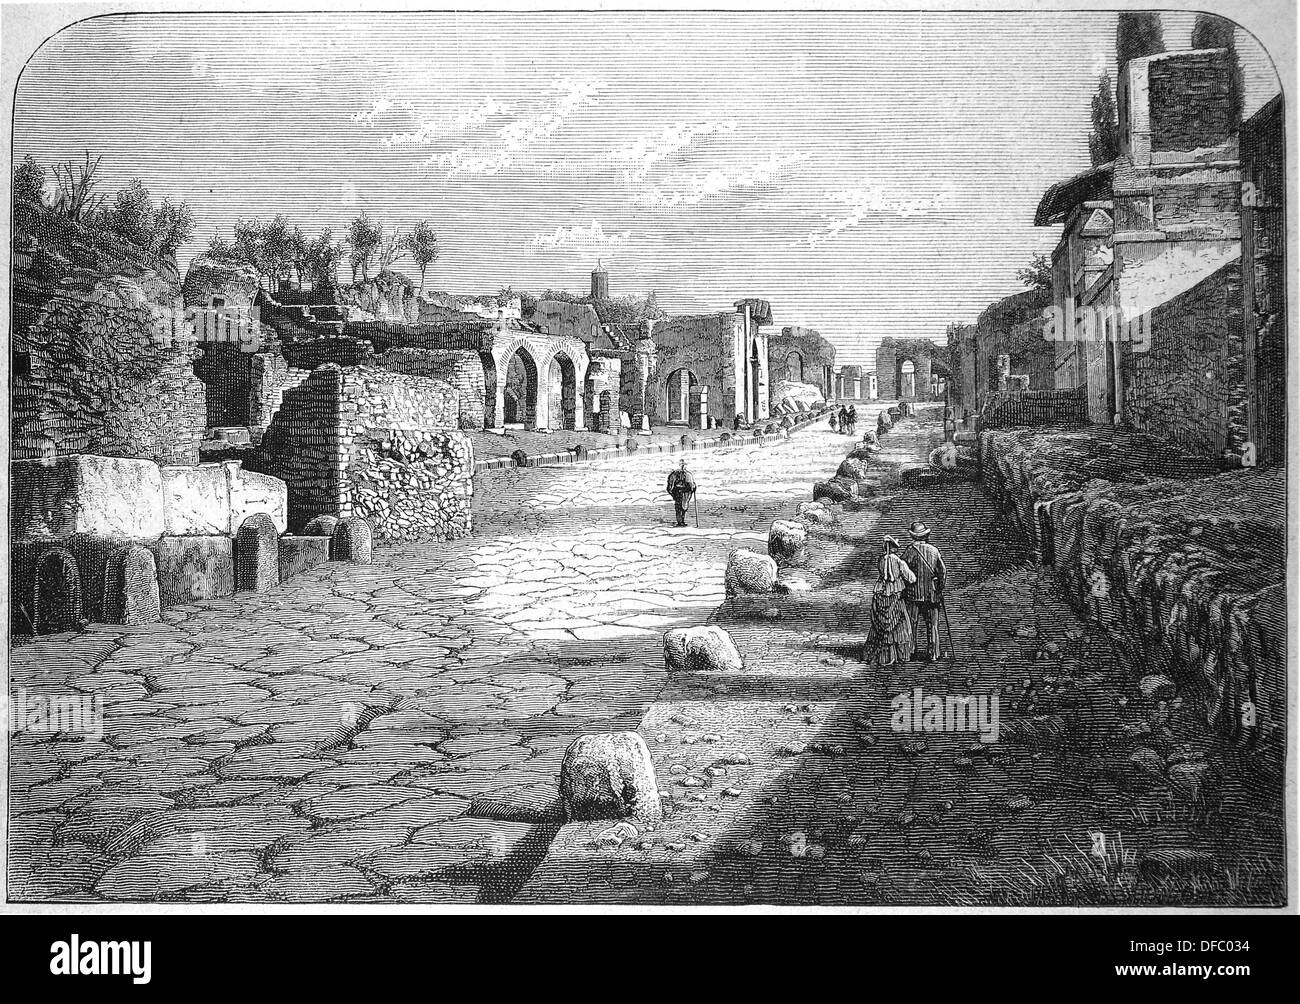 Italy. Pompeii. Ancient Roman town-city. Sreet of Tombs. Engraving. The Iberian Illustration. 1885. - Stock Image